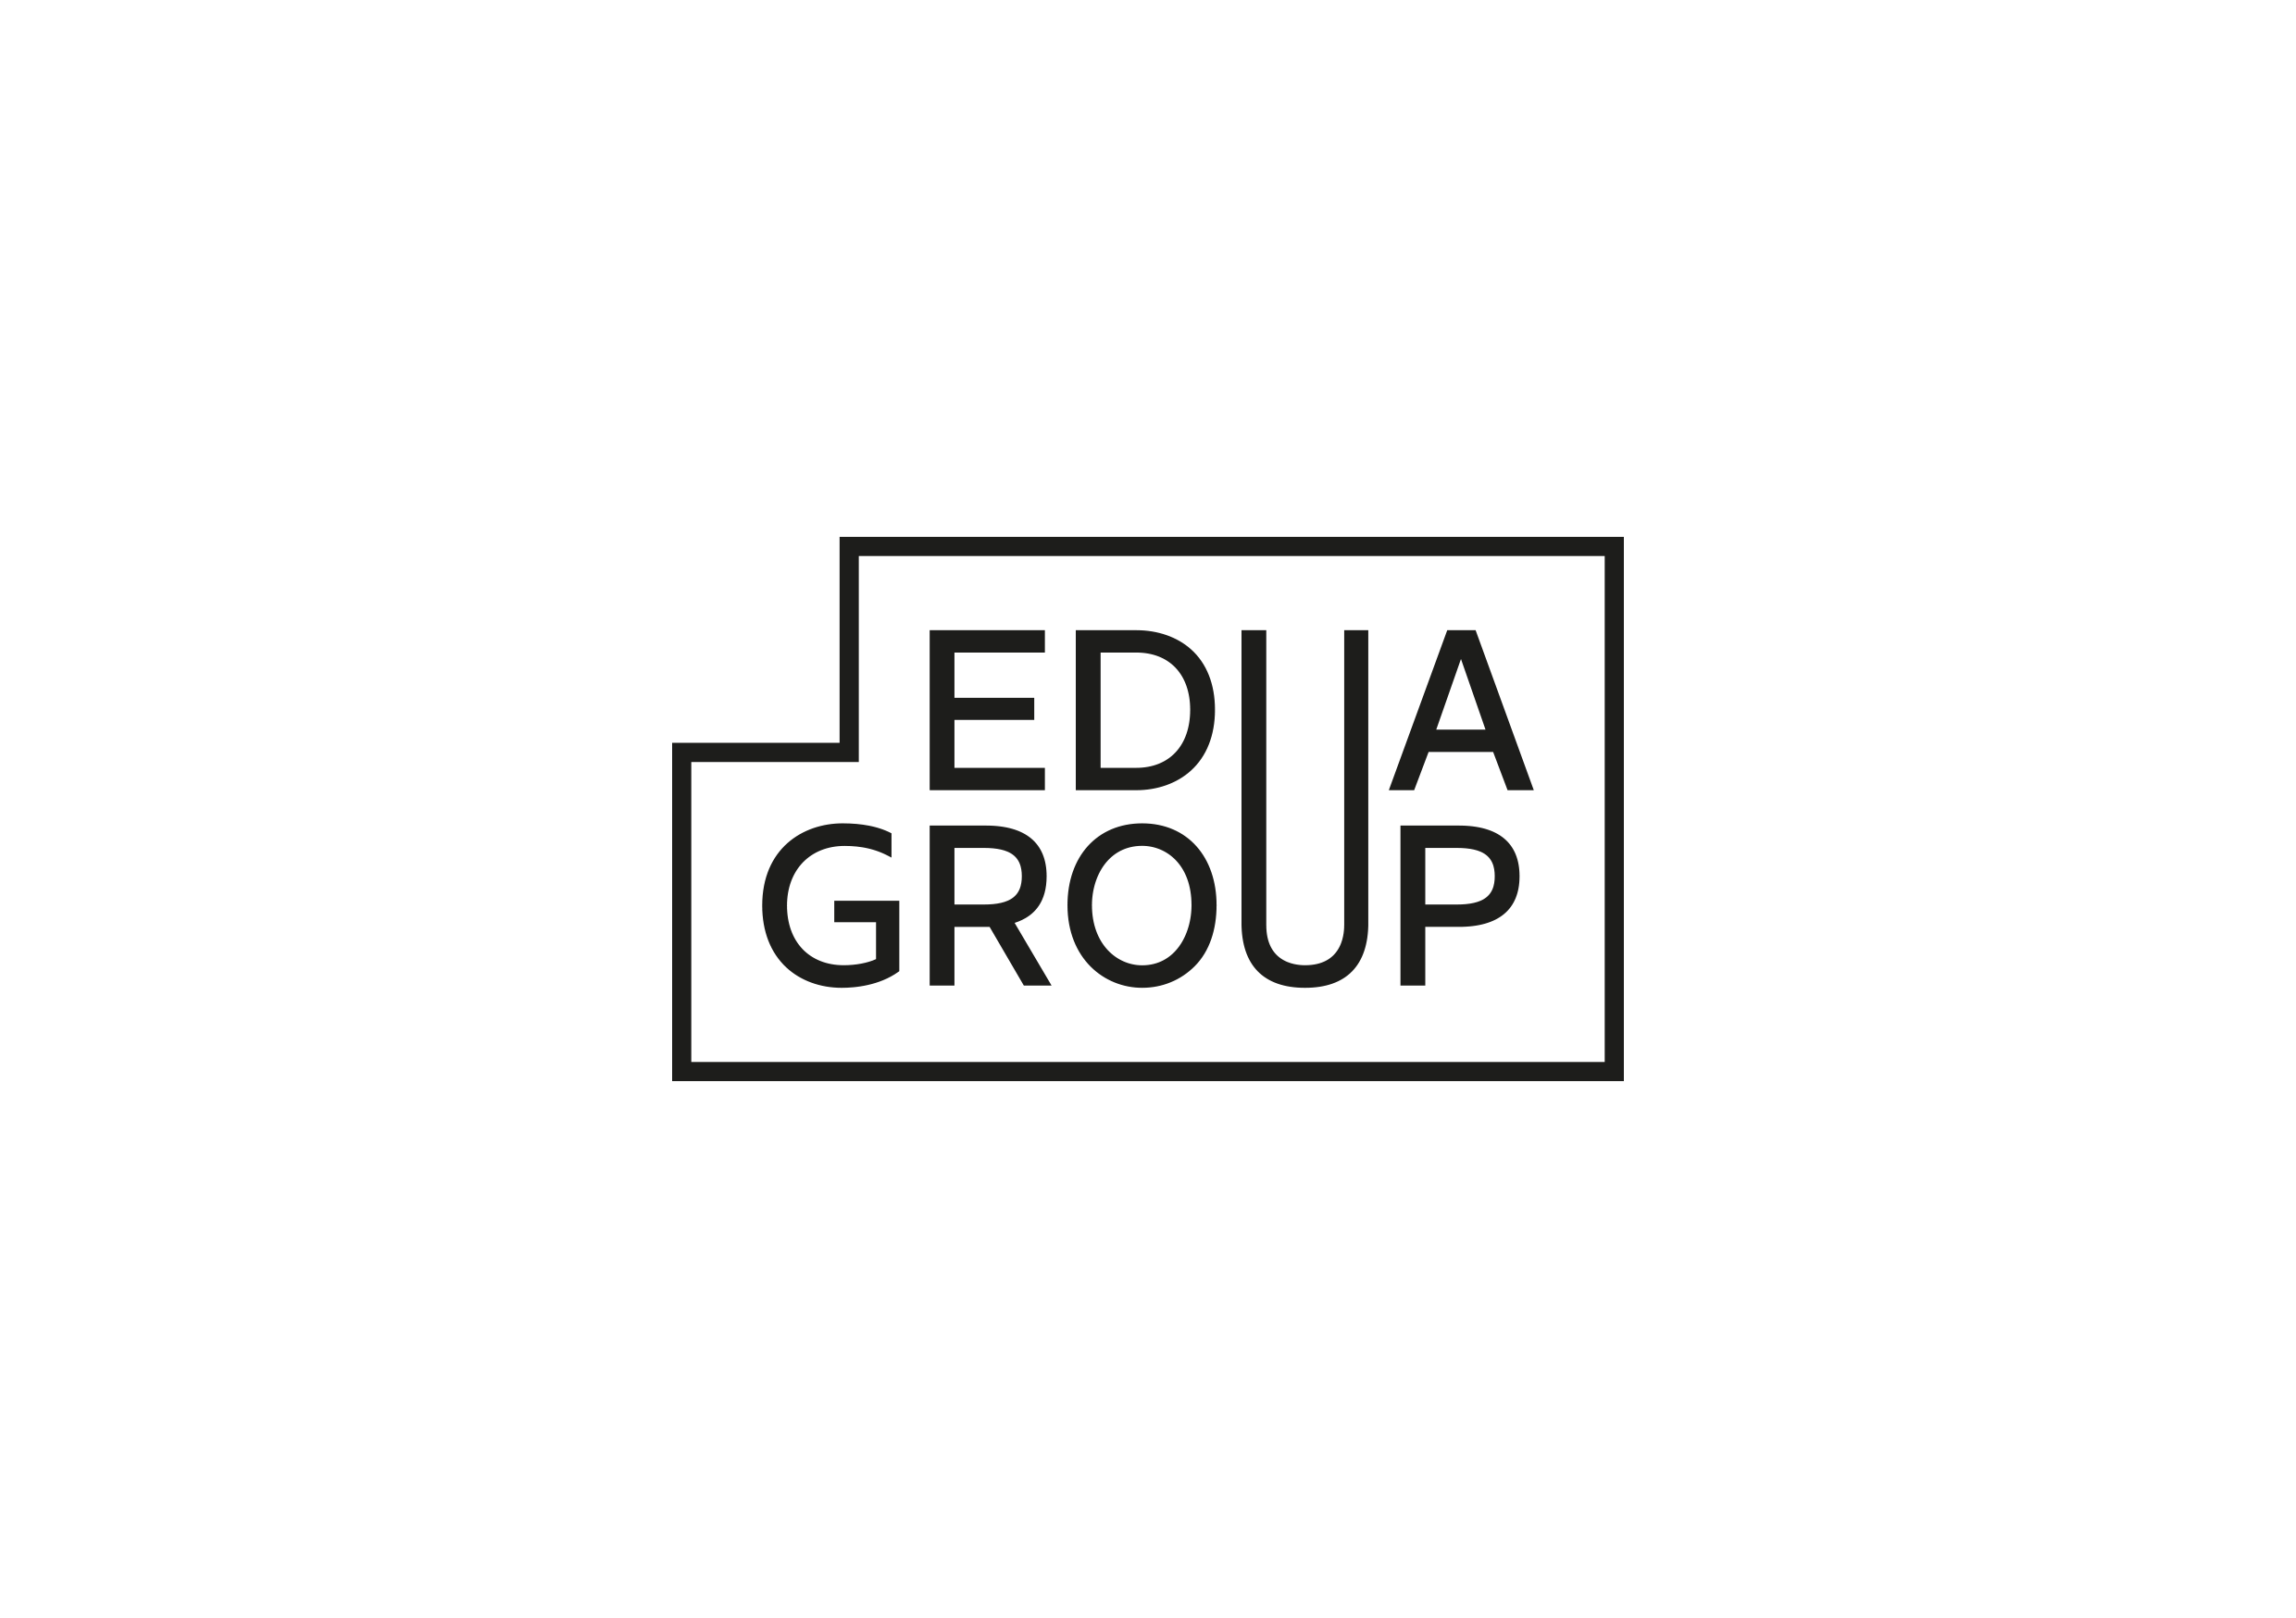 EDUA group